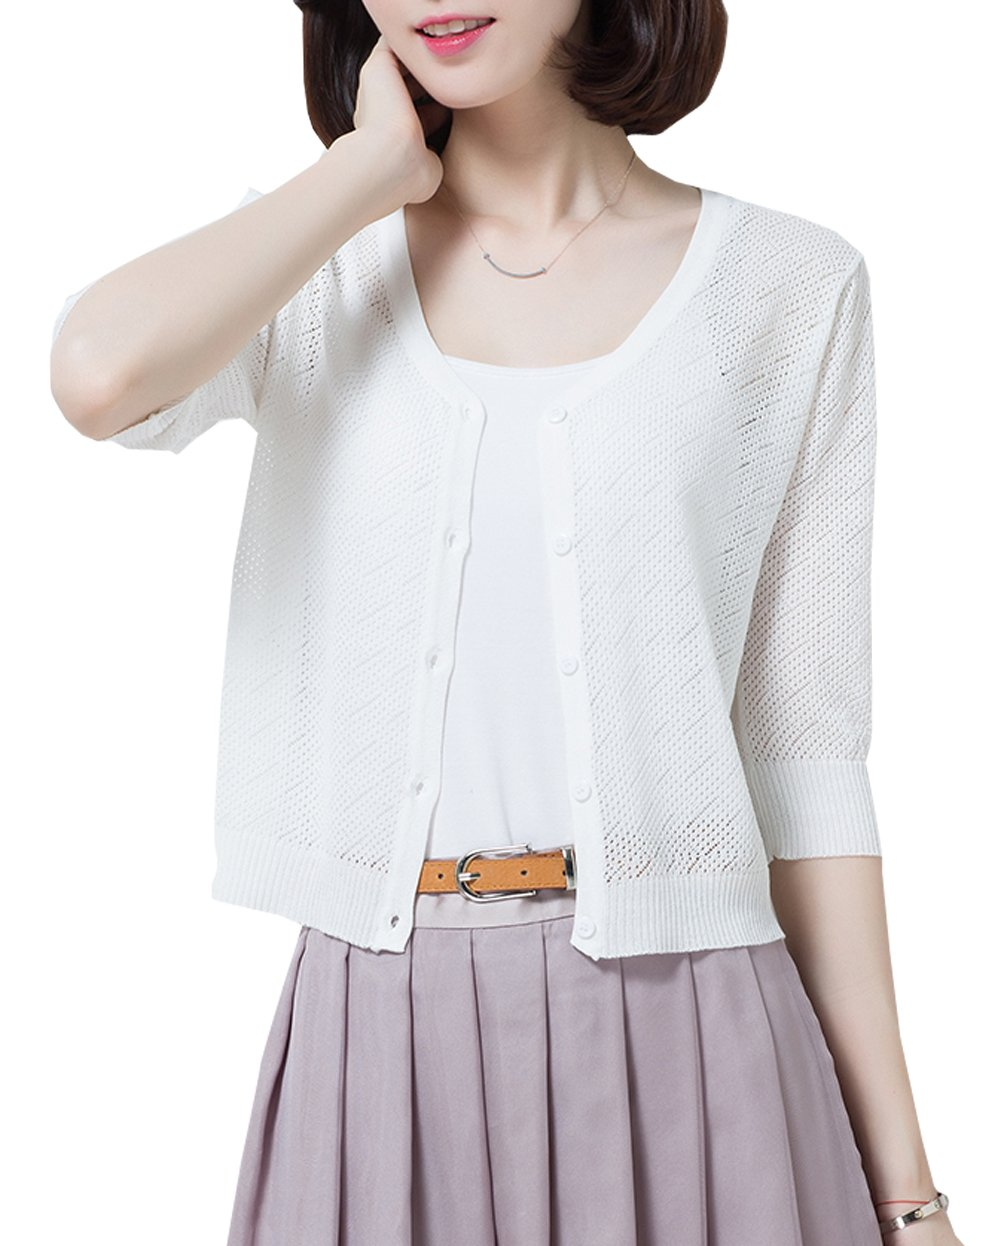 NianEr Summer V Neck Short Cardigans Women Button up Knit 3 4 Sleeve Cropped Cardigan Sweaters